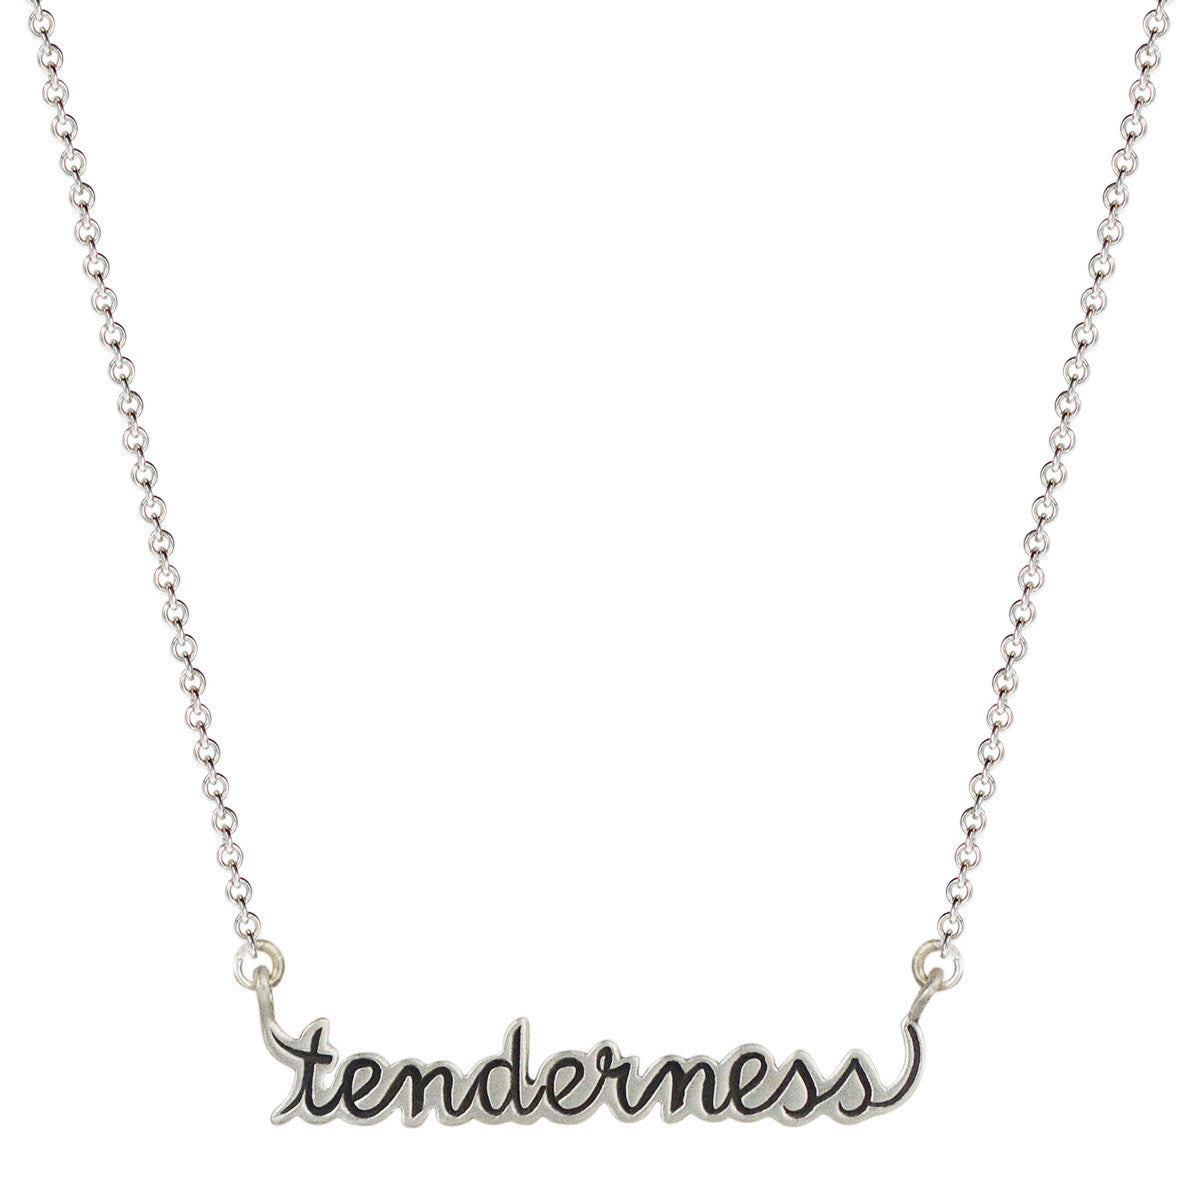 Sterling Silver 'Tenderness' Script Pendant